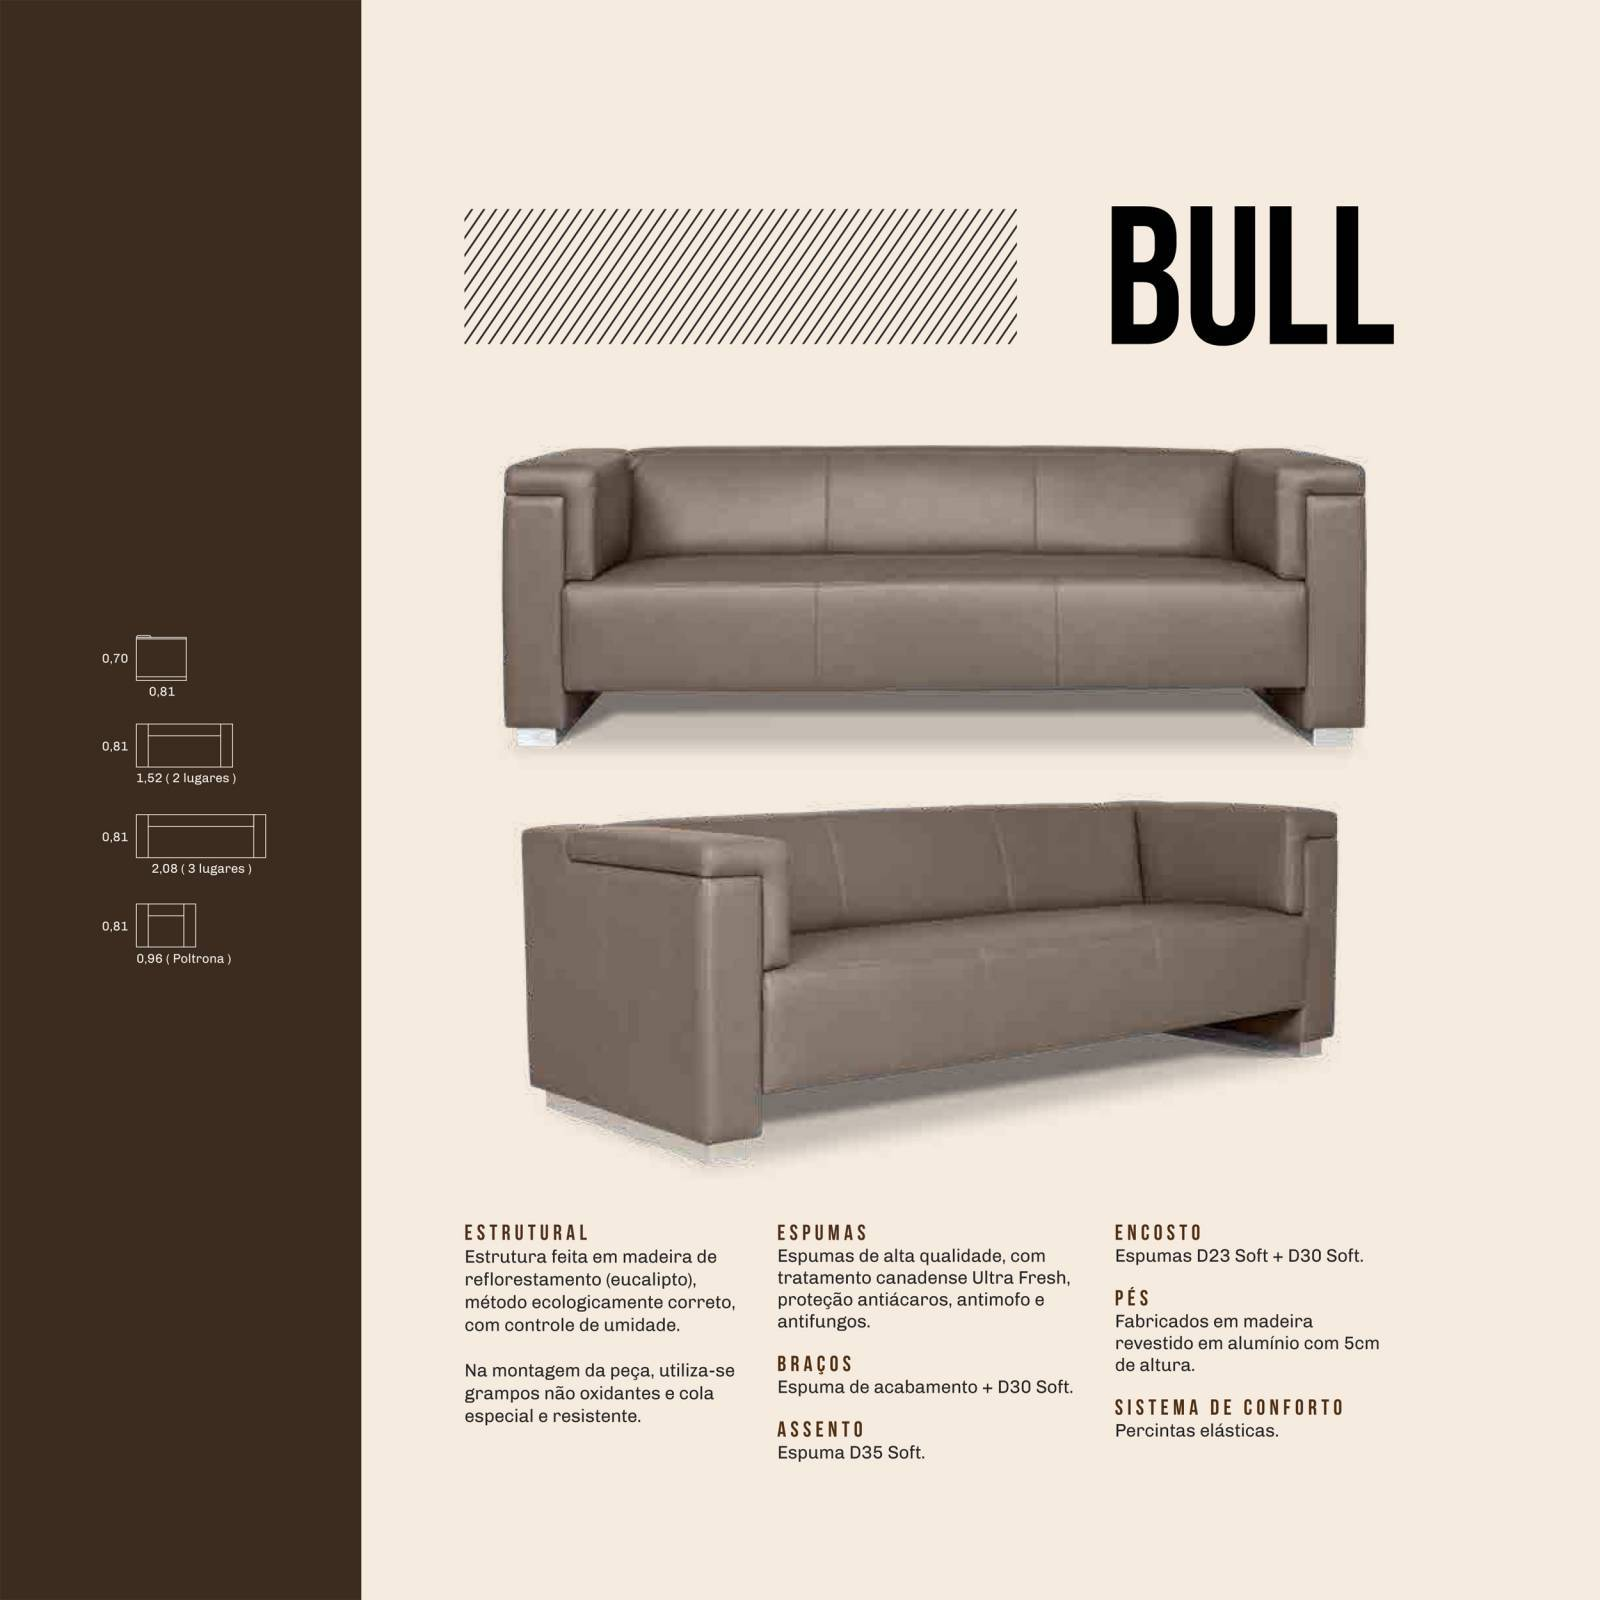 Estofado Bull Mannes - All Home